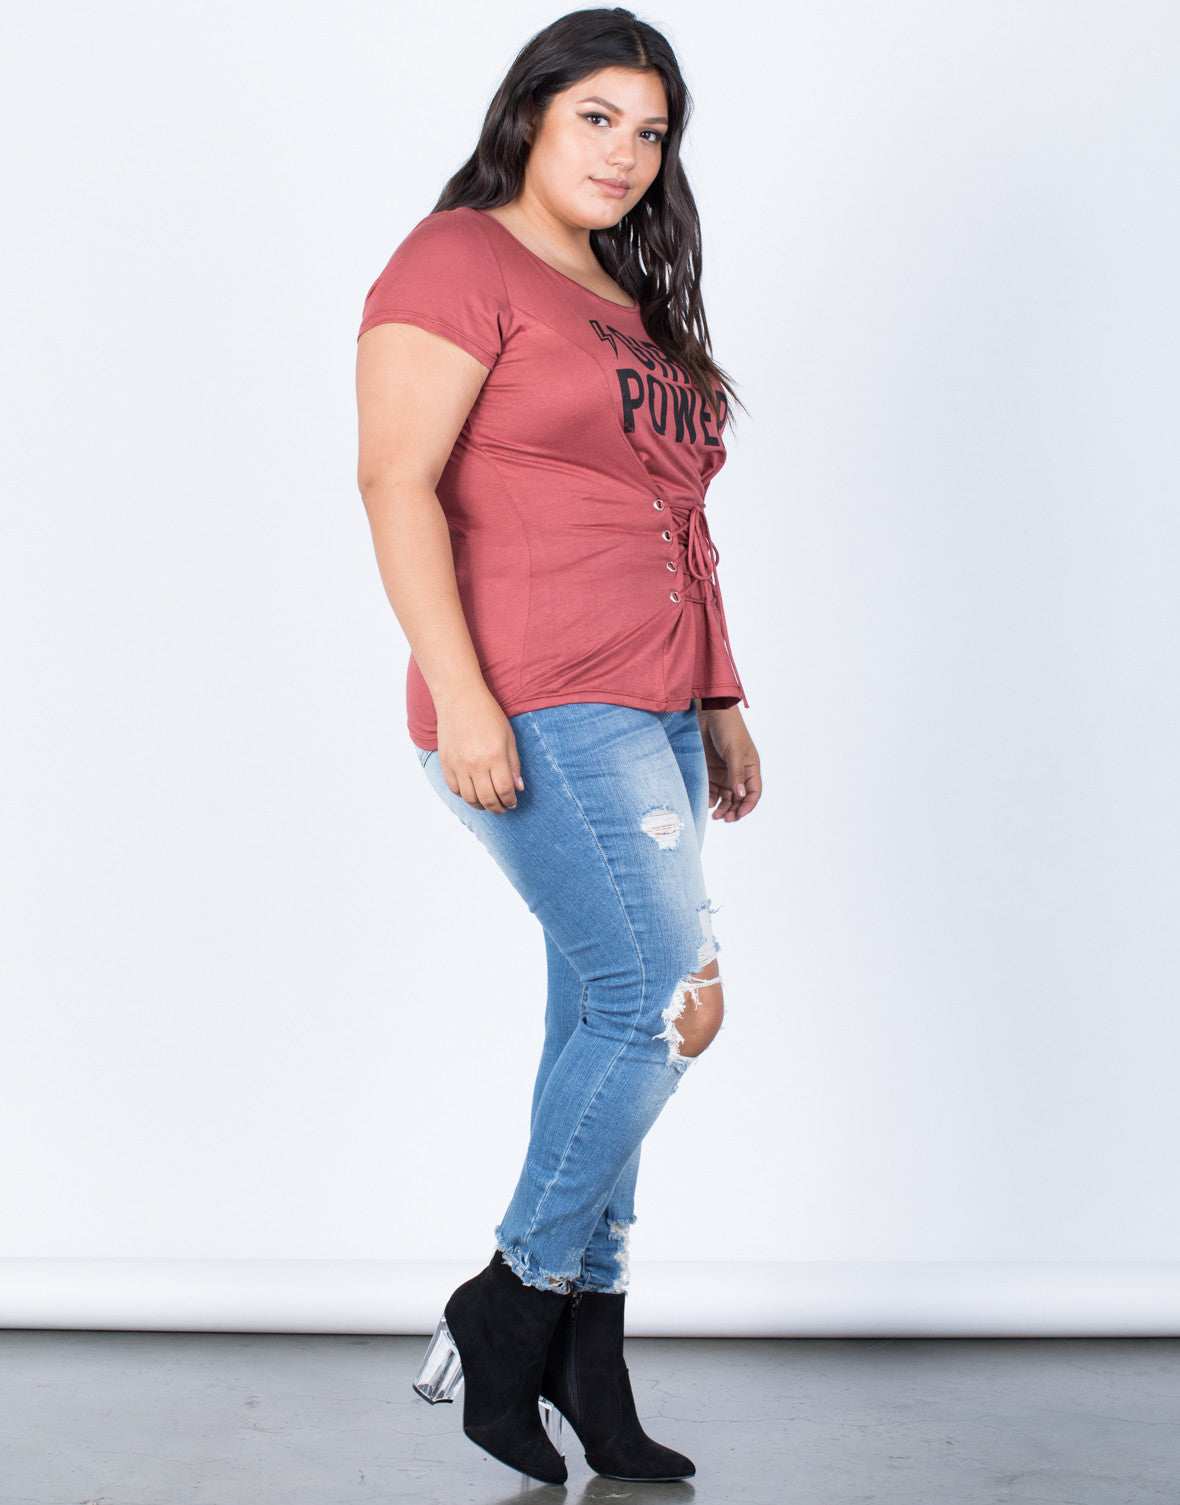 Plus Size Girl Power Tee – 2020AVE